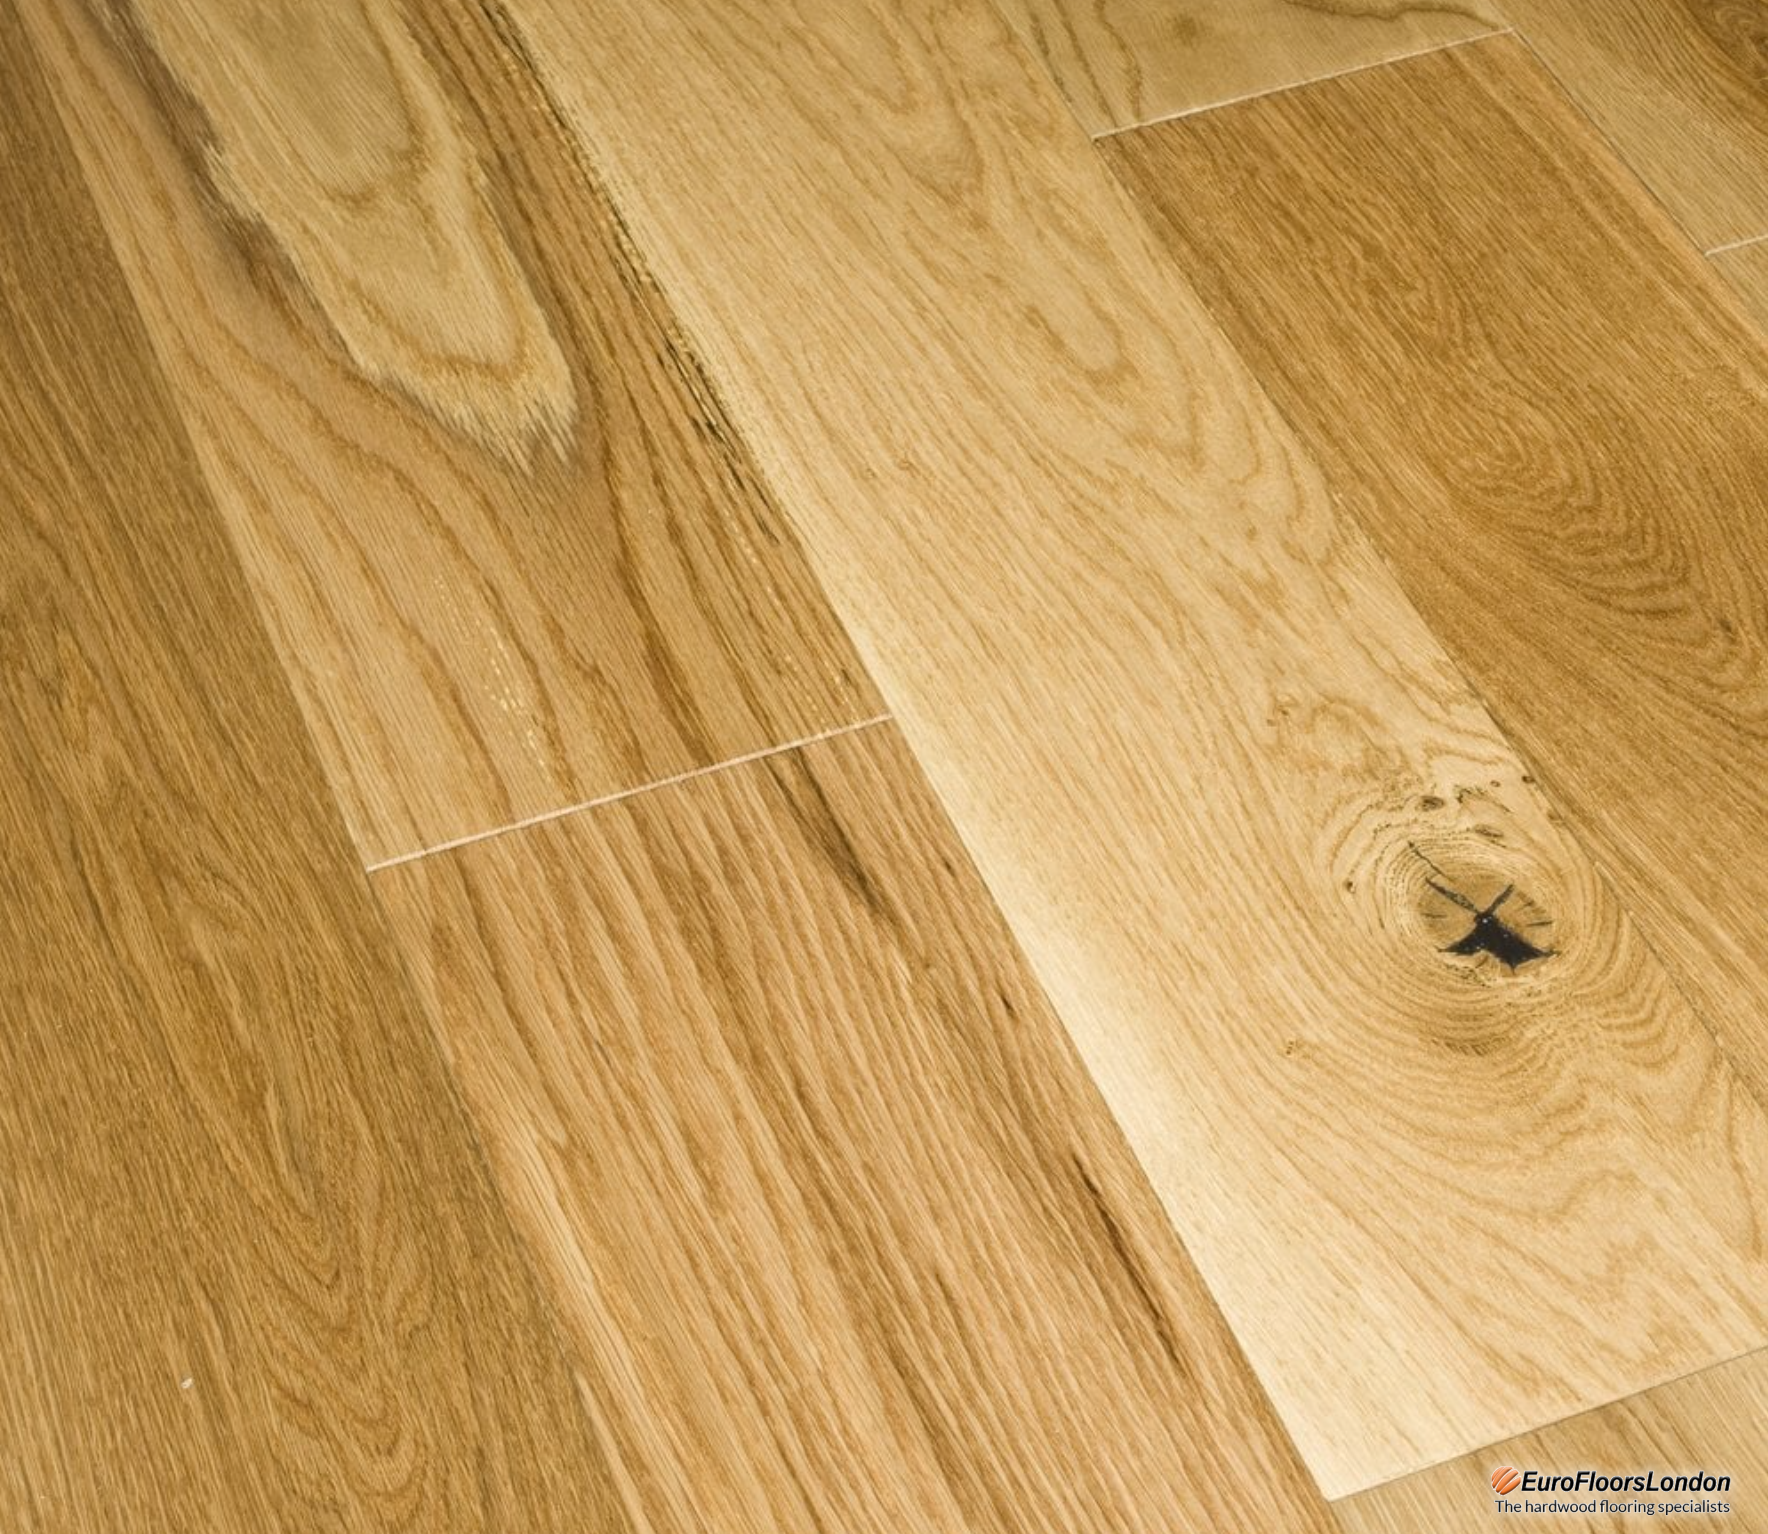 engineered wood flooring planks. in a natural light brown lacquered finish